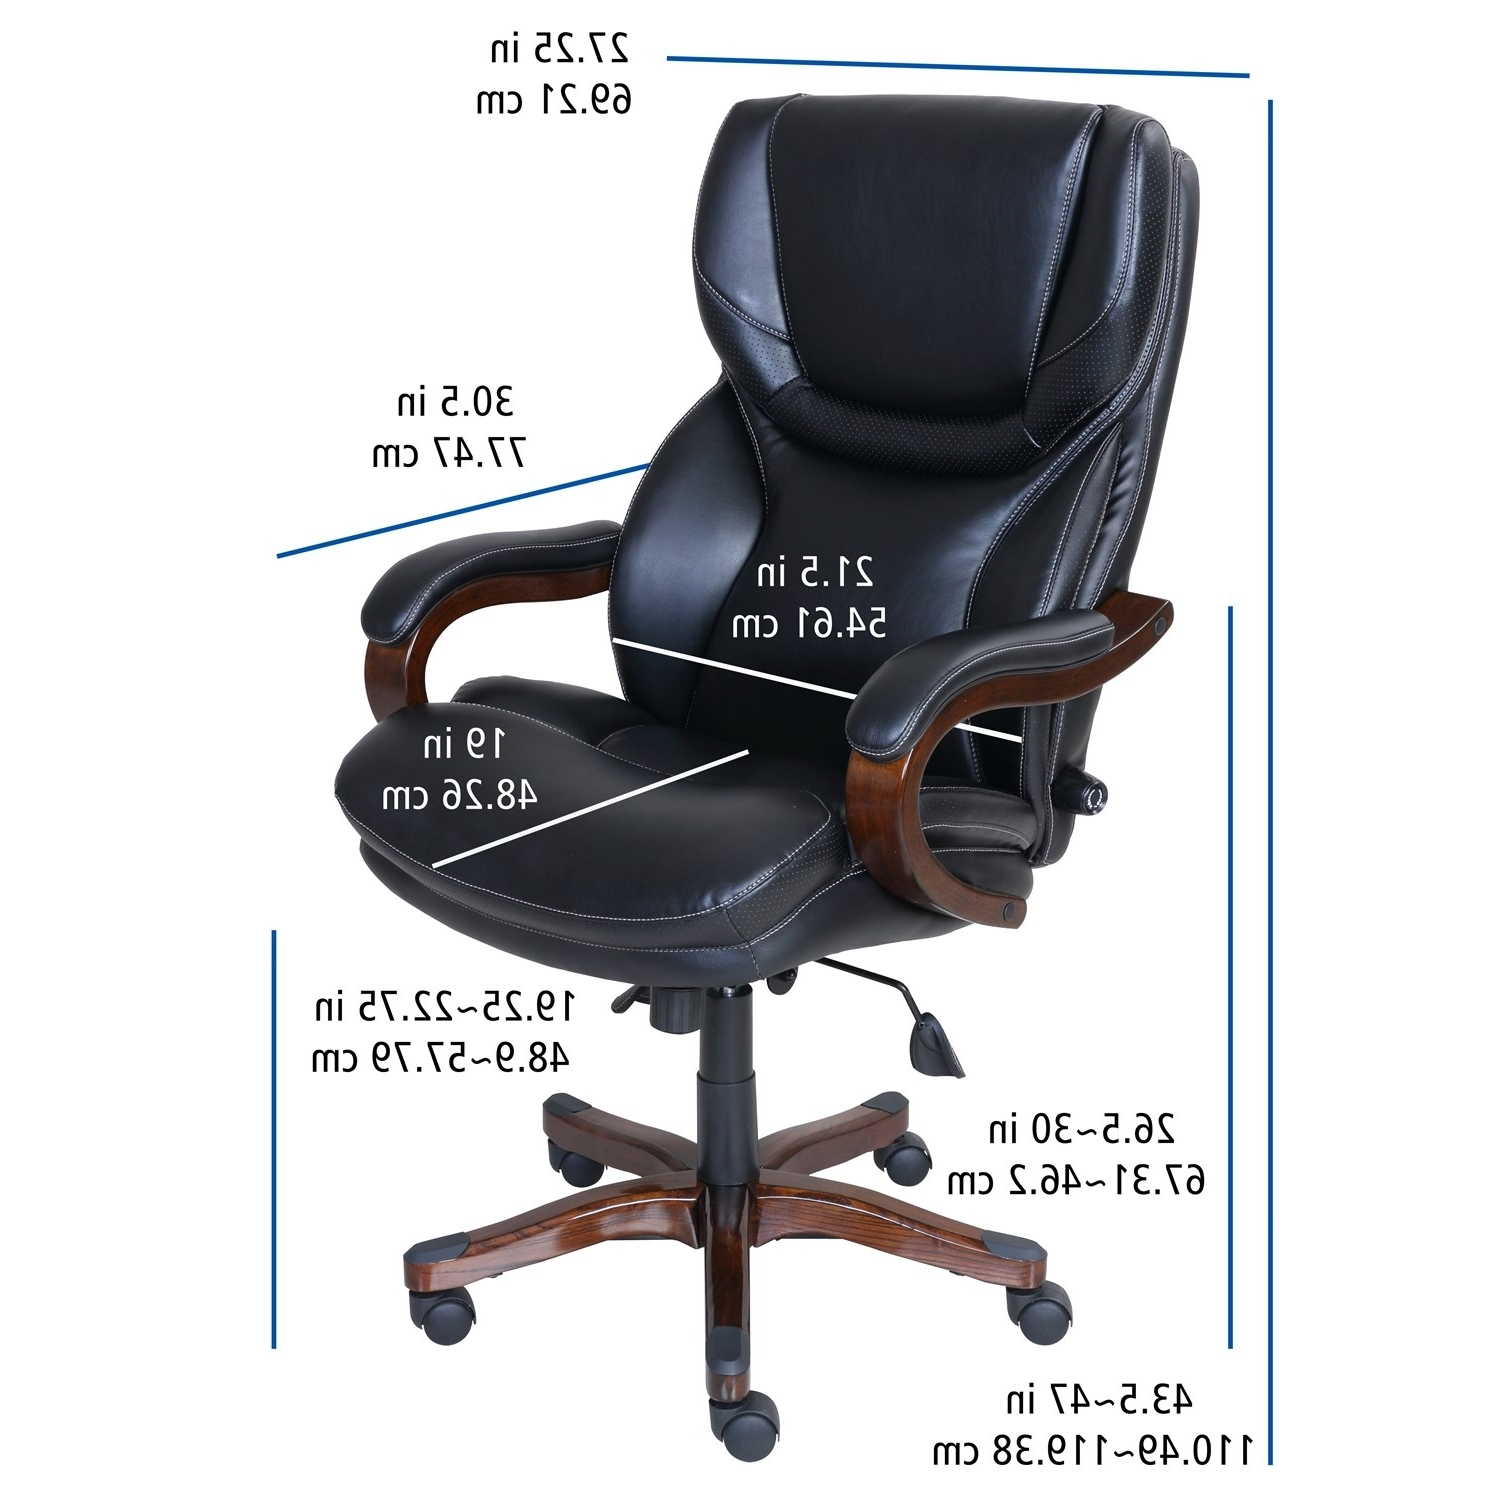 Serta At Home 46859 Executive Office Chair In Black With Bonded In 2019 Black Executive Office Chairs (Gallery 17 of 20)